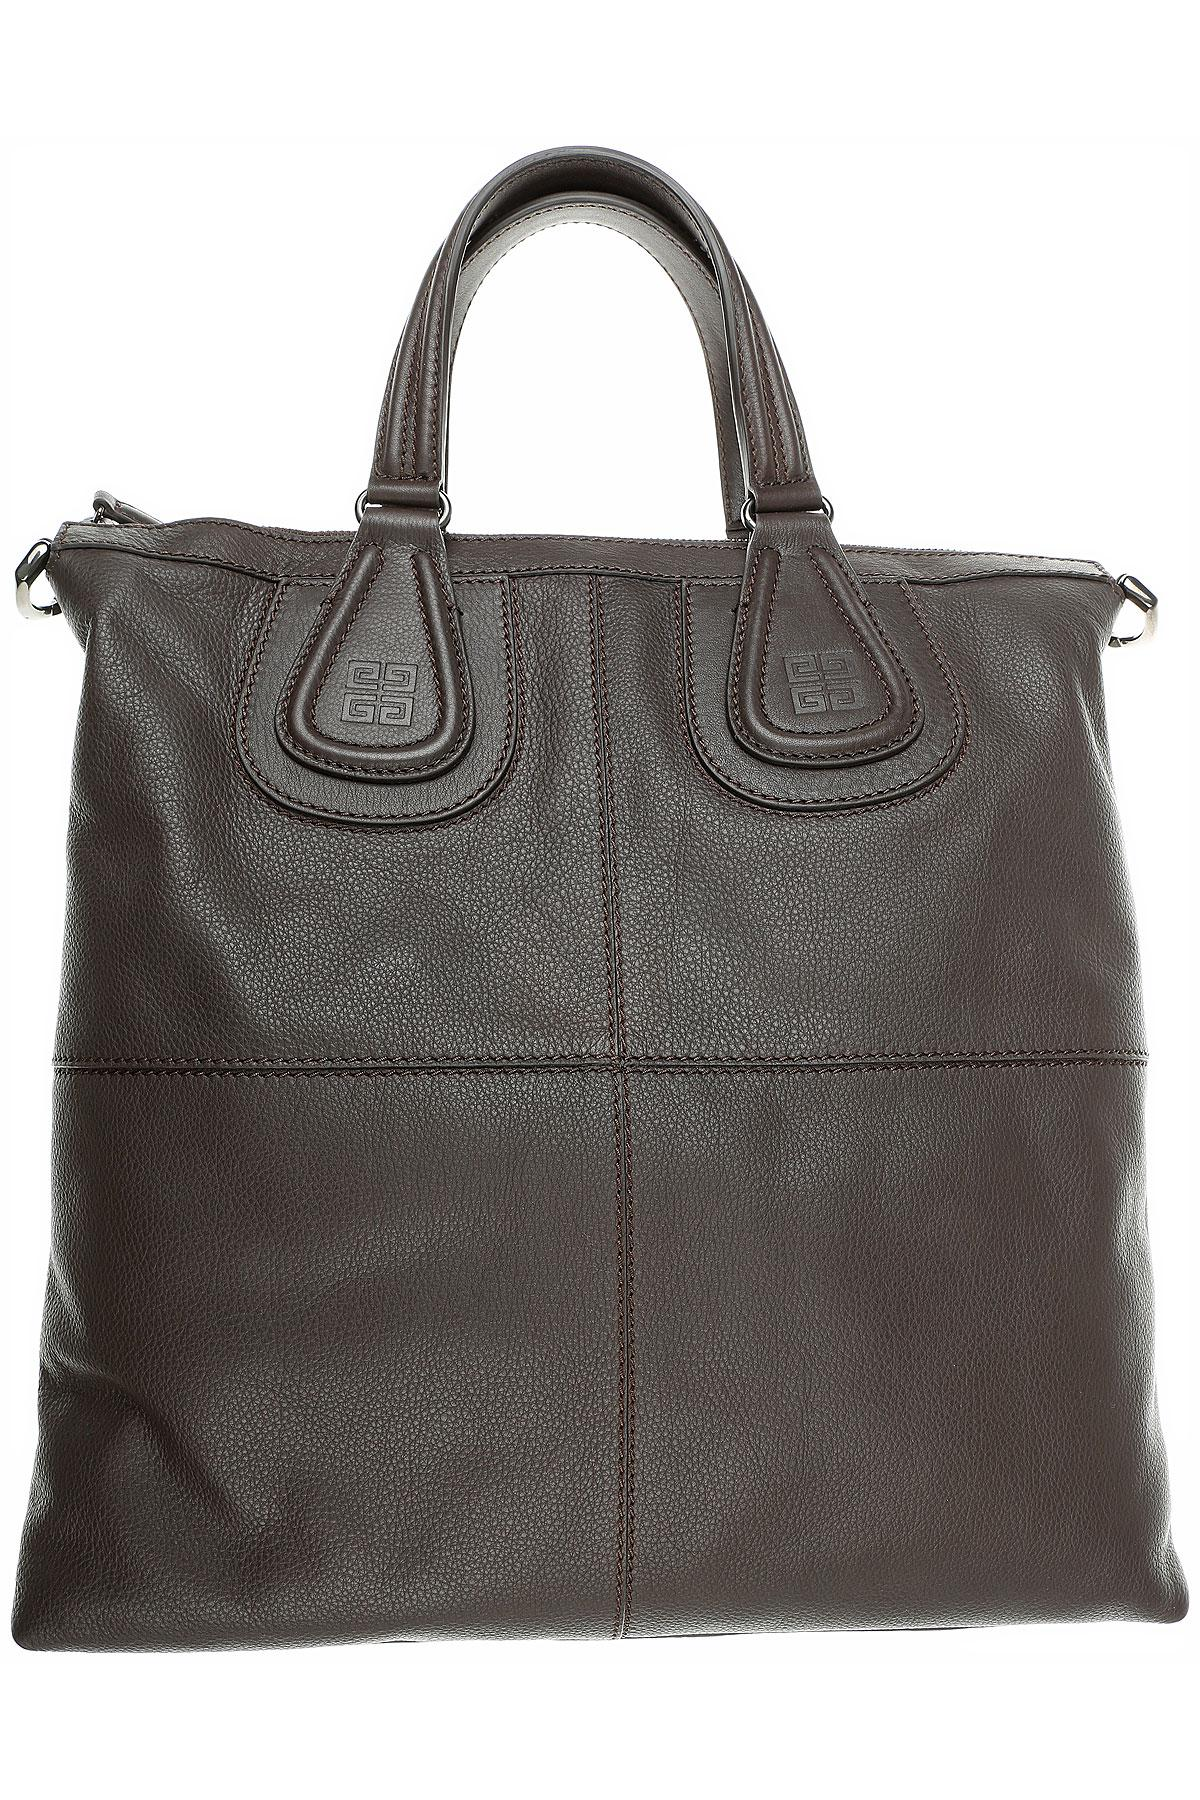 a3df2cc386a4 Lyst - Givenchy Tote Bag On Sale in Brown